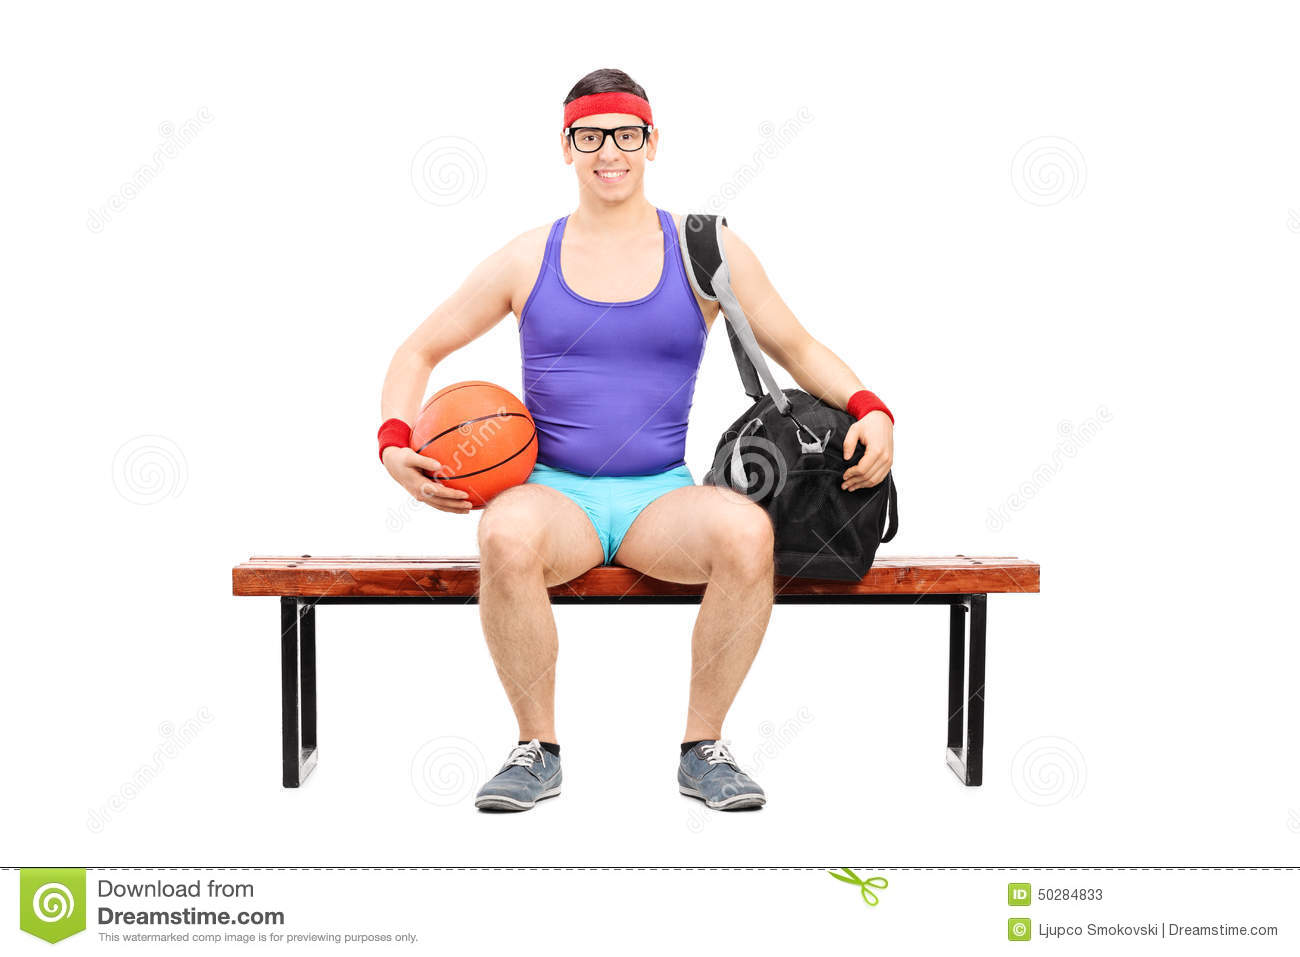 Nerdy Athlete Holding A Basketball Seated On A Bench Isolated On White